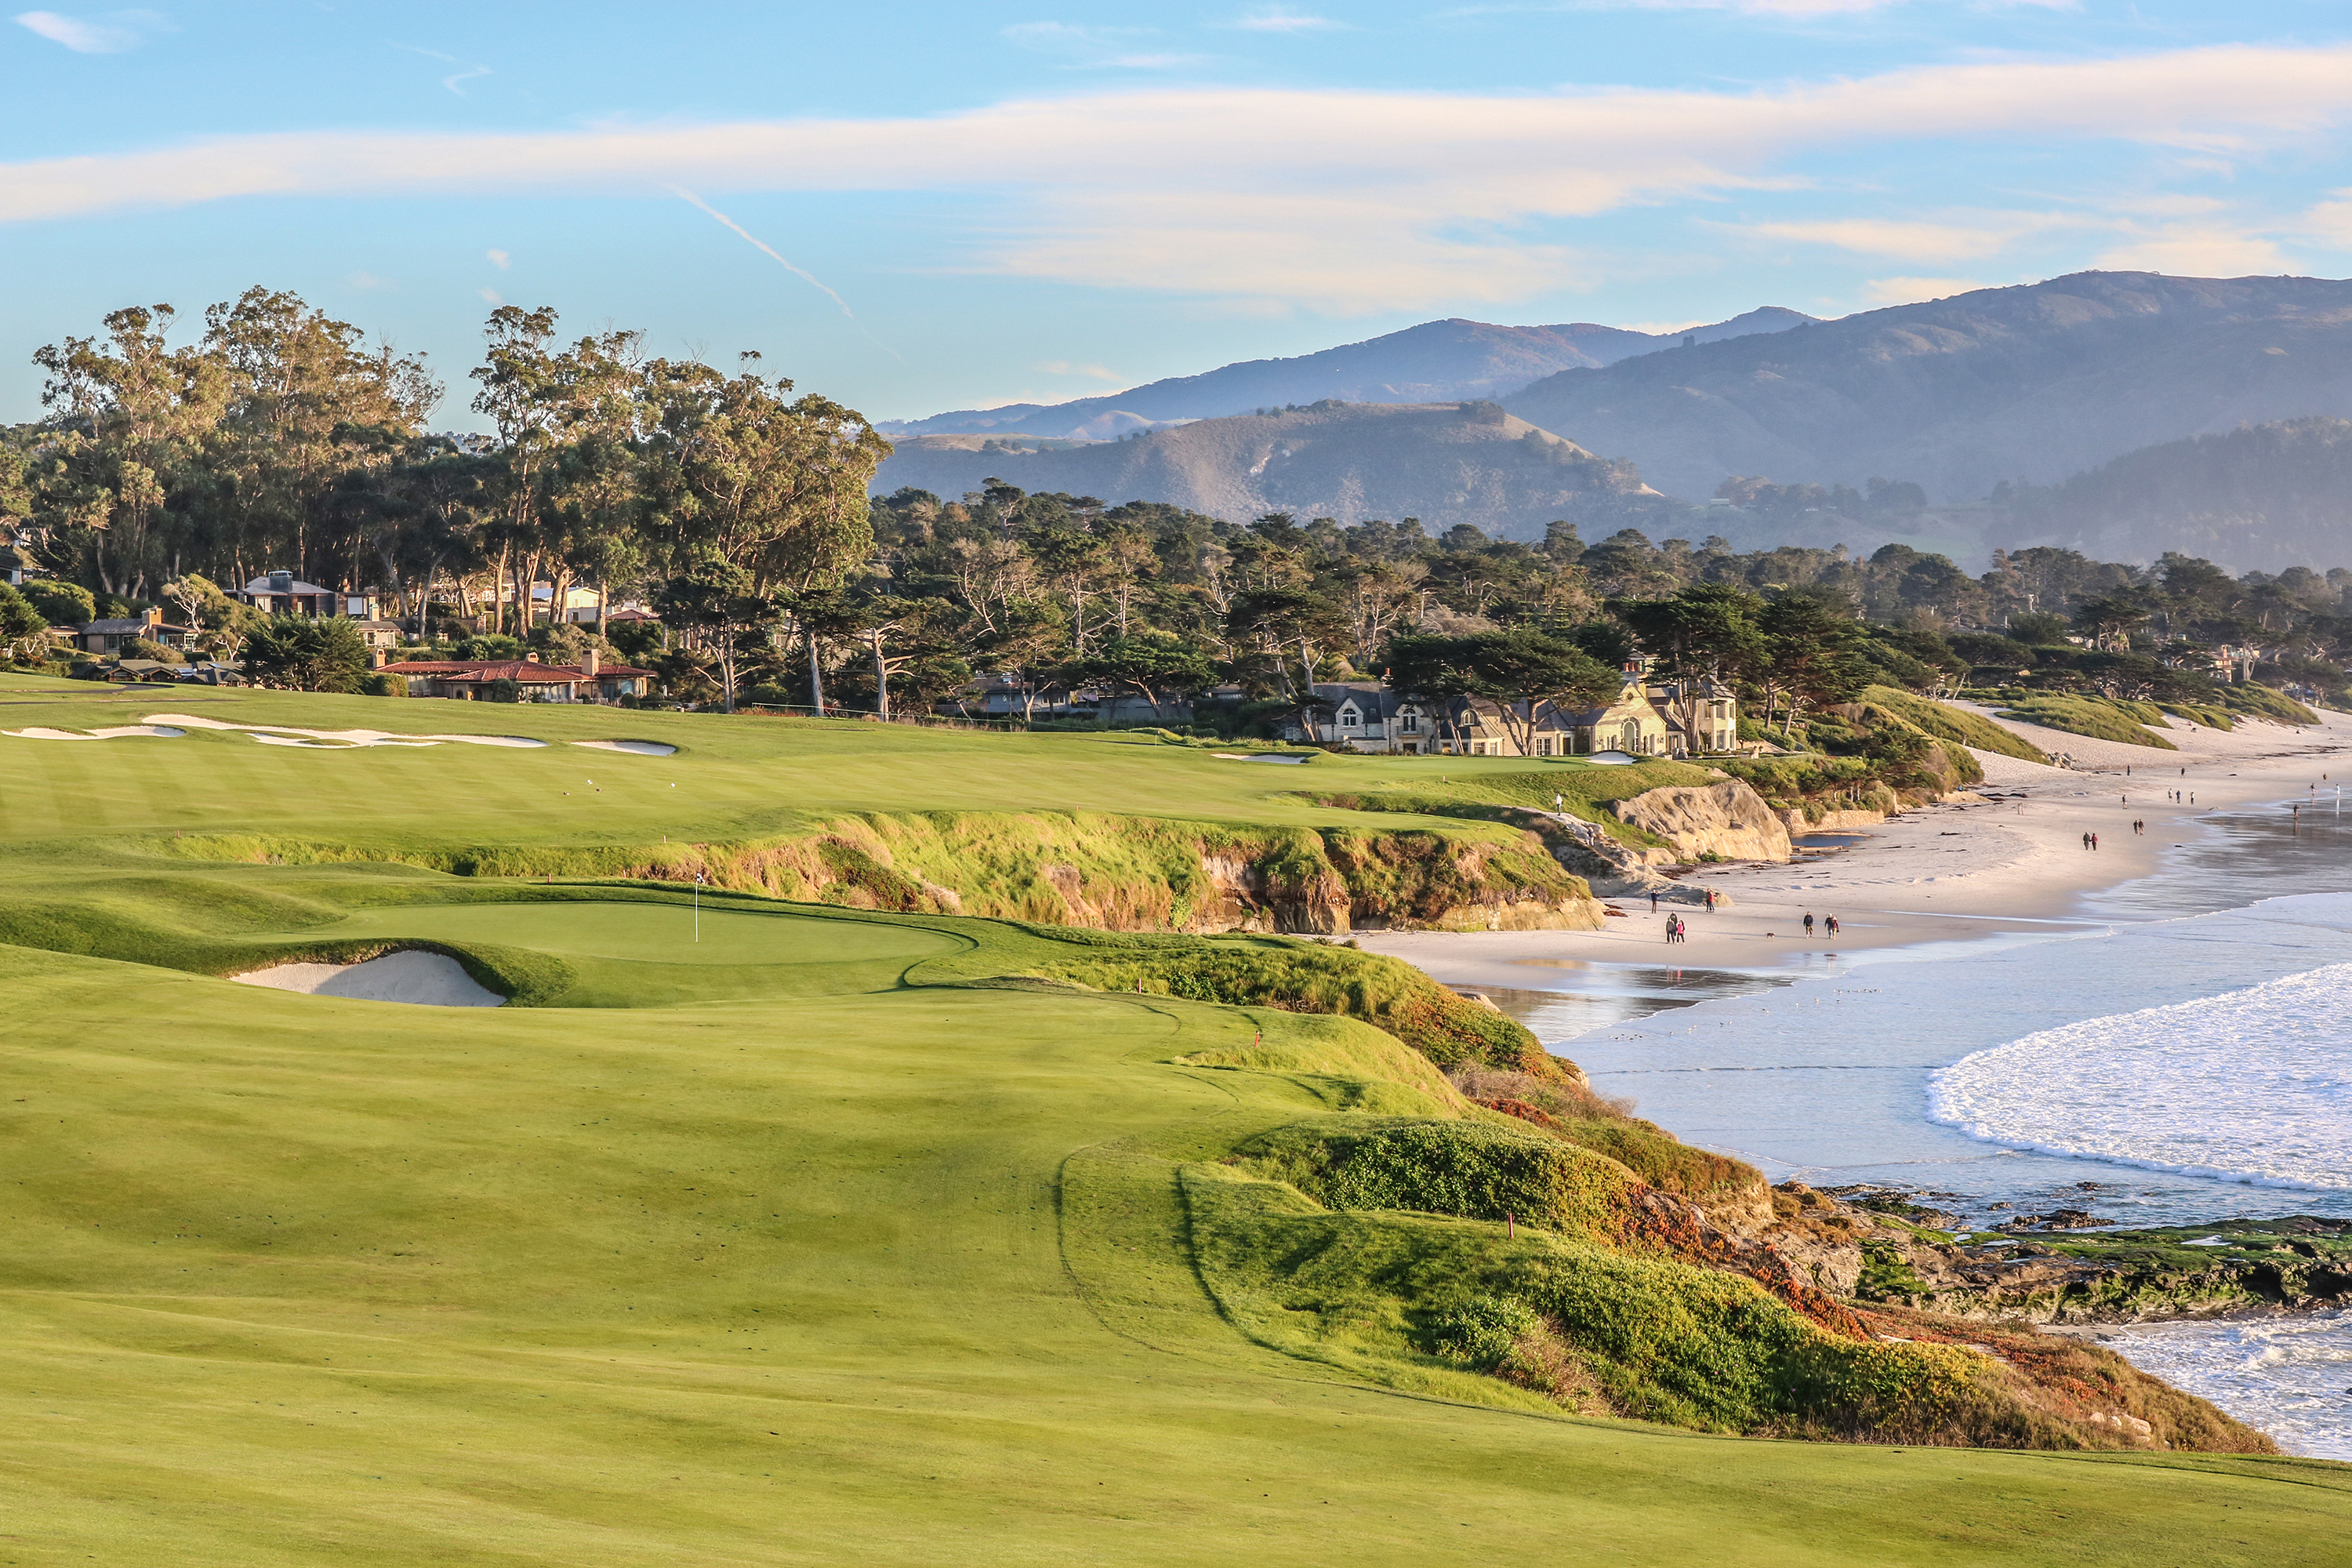 9th and 10th holes Pebble Beach